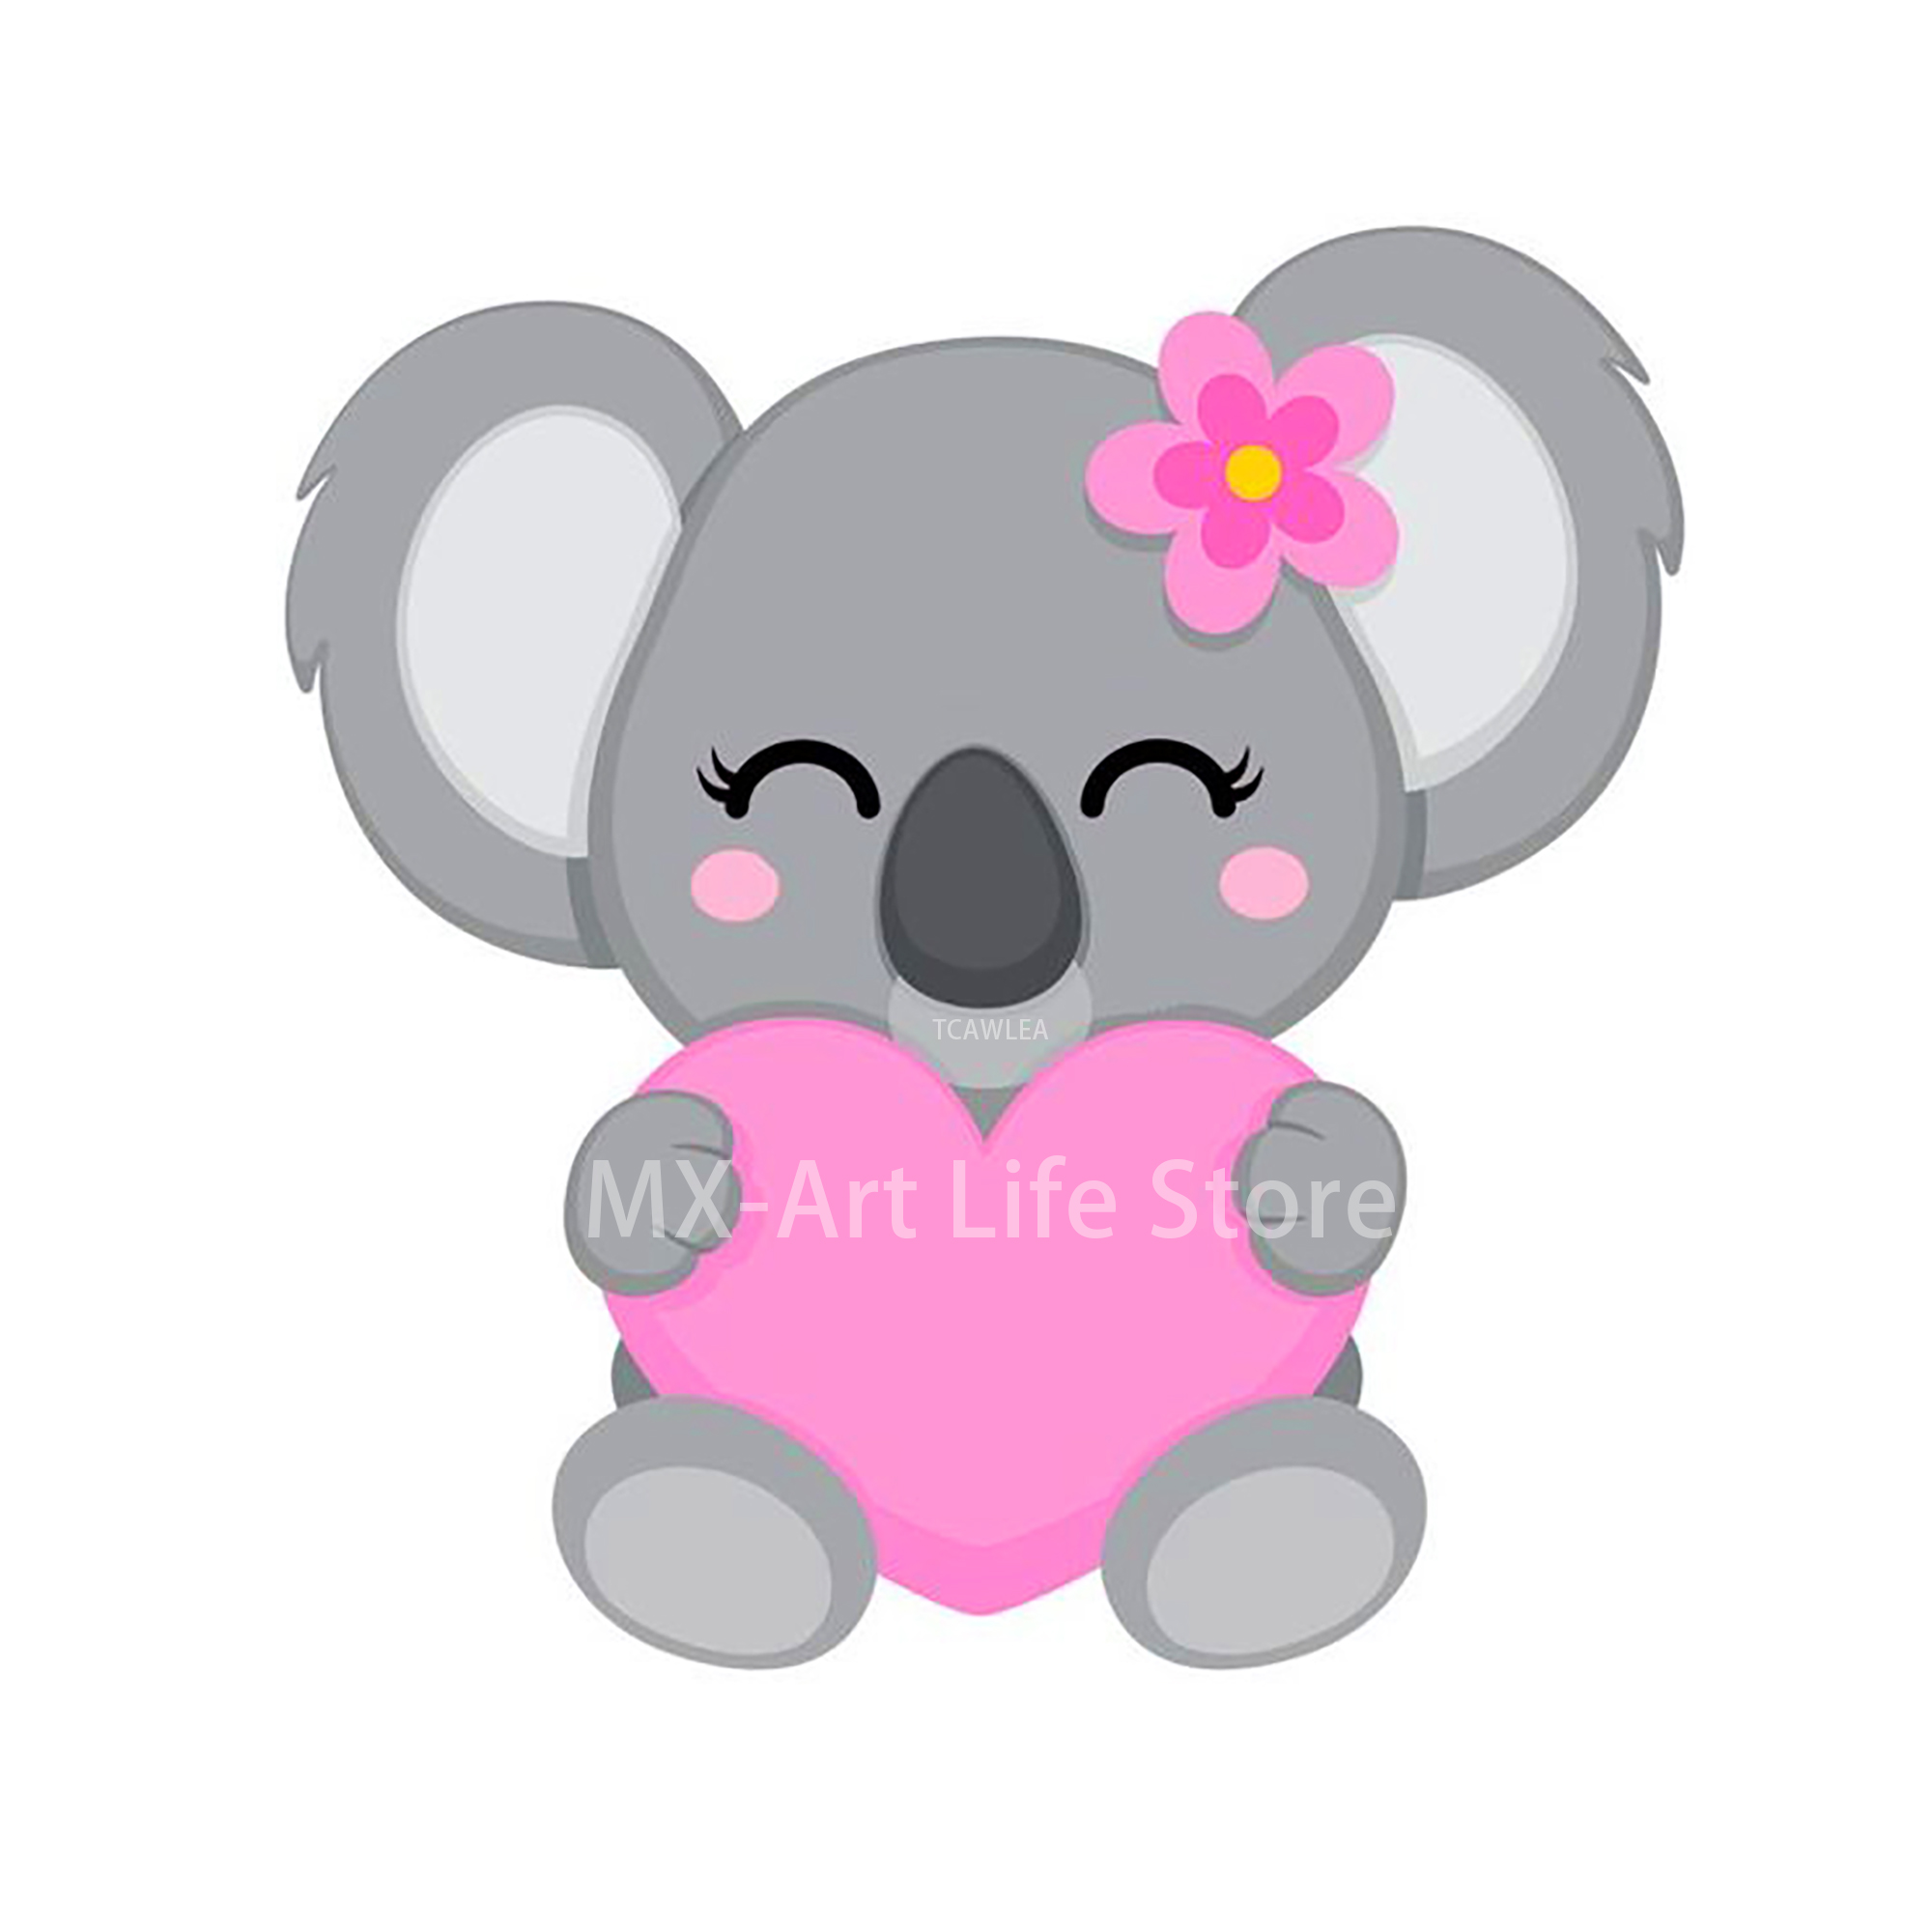 2020 Love Flower Sloth Girl Cutting Dies Animal Baby Doll Craft Stencil for DIY Scrapbooking Cards Decorative(China)